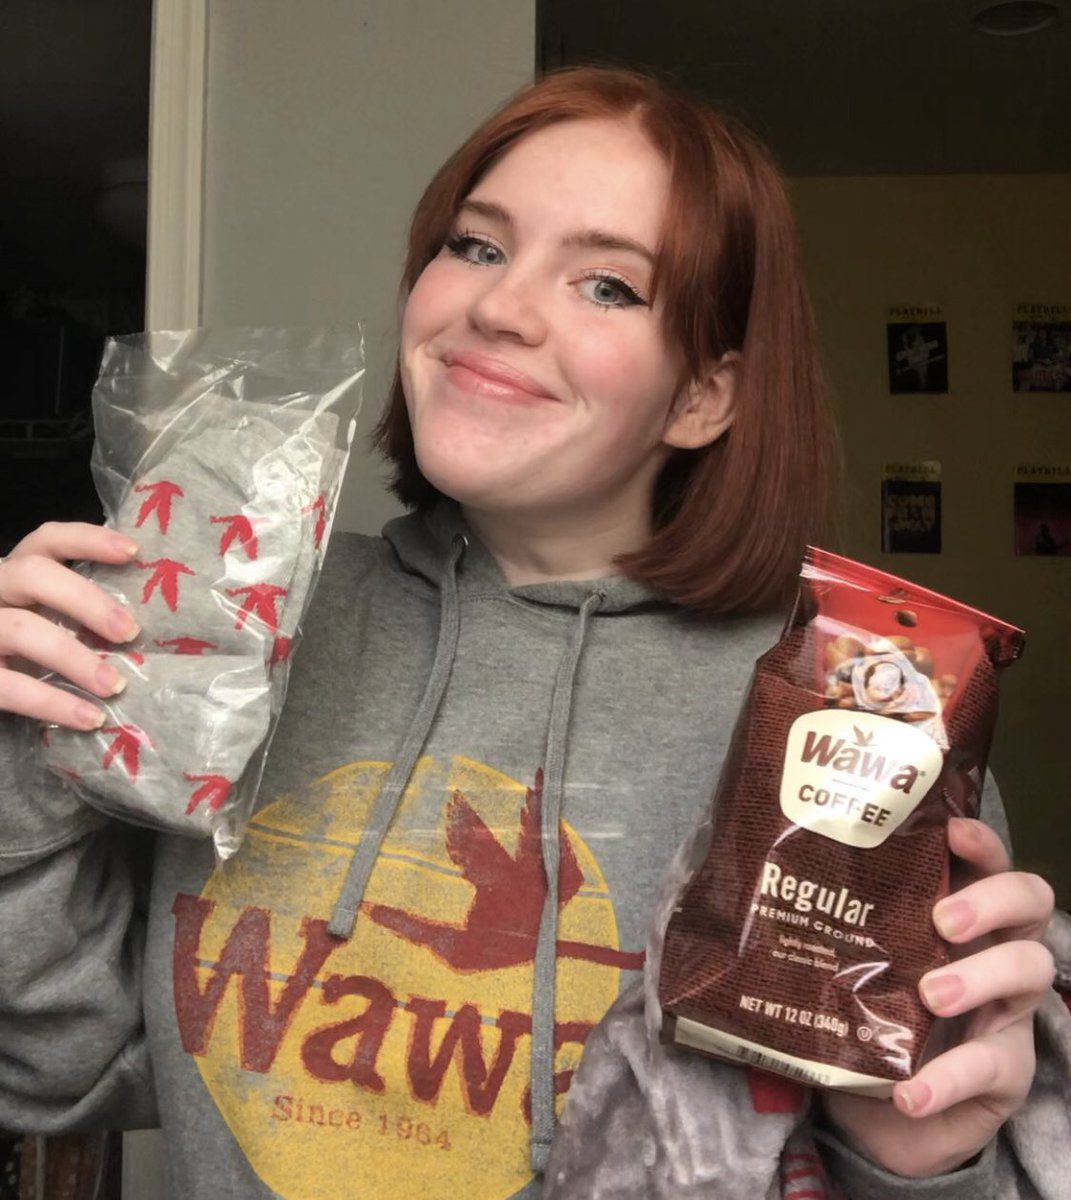 hello @Wawa you are the coolest ever😎